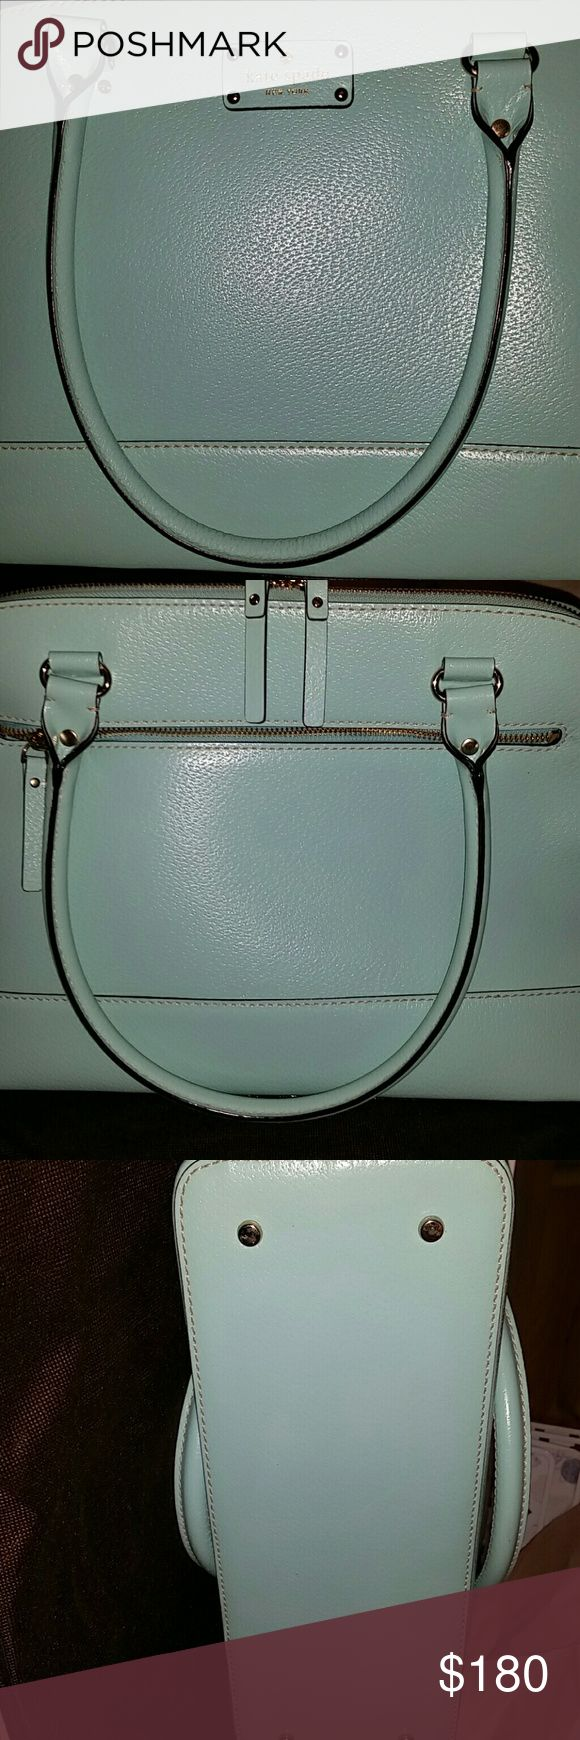 "Kate Spade Rachelle Wellesley TODAY ONLY!! Gorgeous Tiffany blue, MINT condition, never carried, gold hardware & feet, 1 zippered exterior pocket & interior pocket,  2 smaller interior pockets, approx 14""w x 11""t x 4""d, 8""handle drop. It's tearing me up to sell this. I love this bag so much. But the handles are too long for me. Dust bag incl. Perfect for a gift without paying full price. kate spade Bags Satchels"